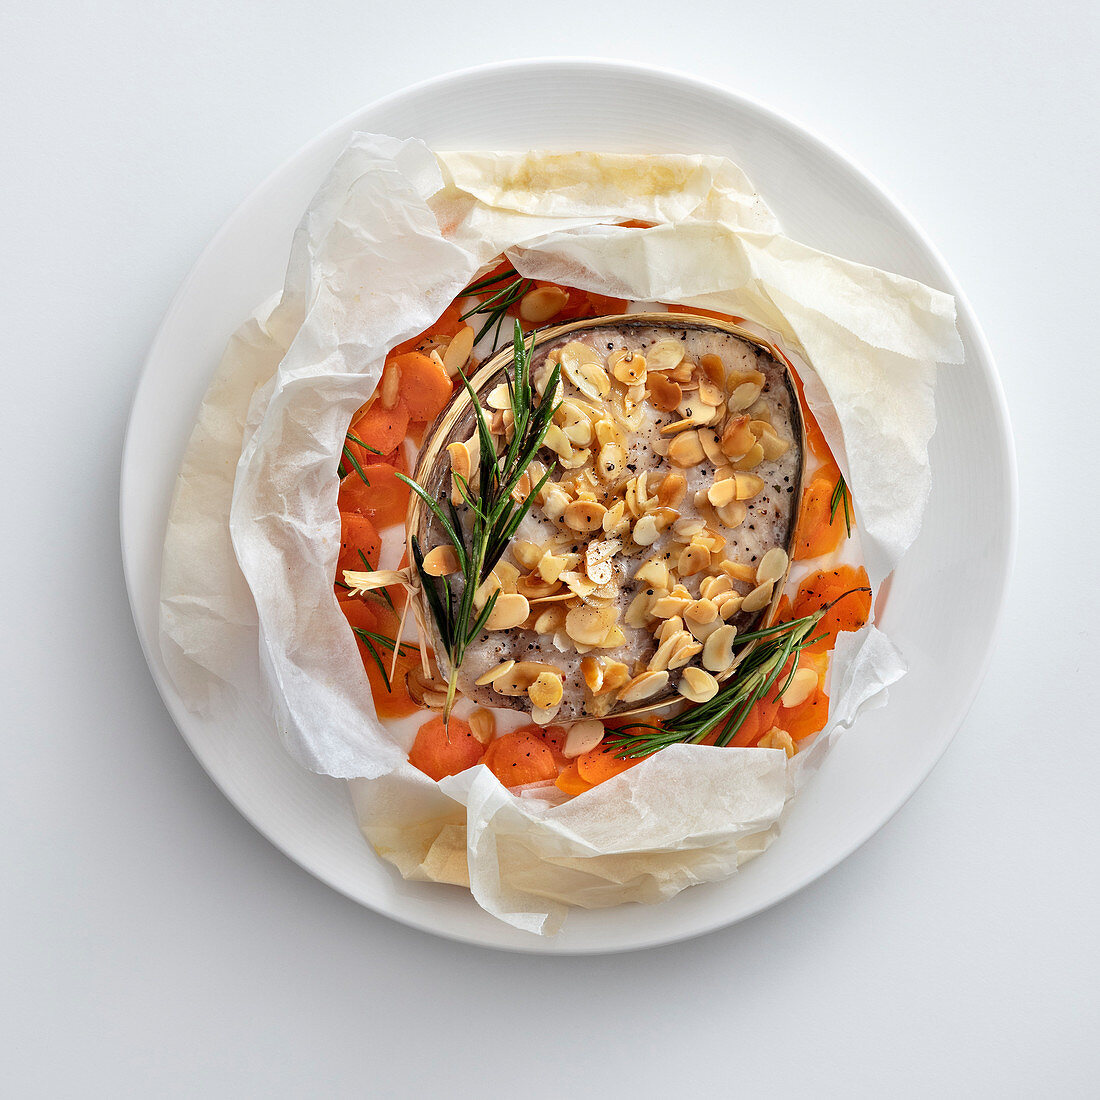 Amberjack with almonds and roasted garlic